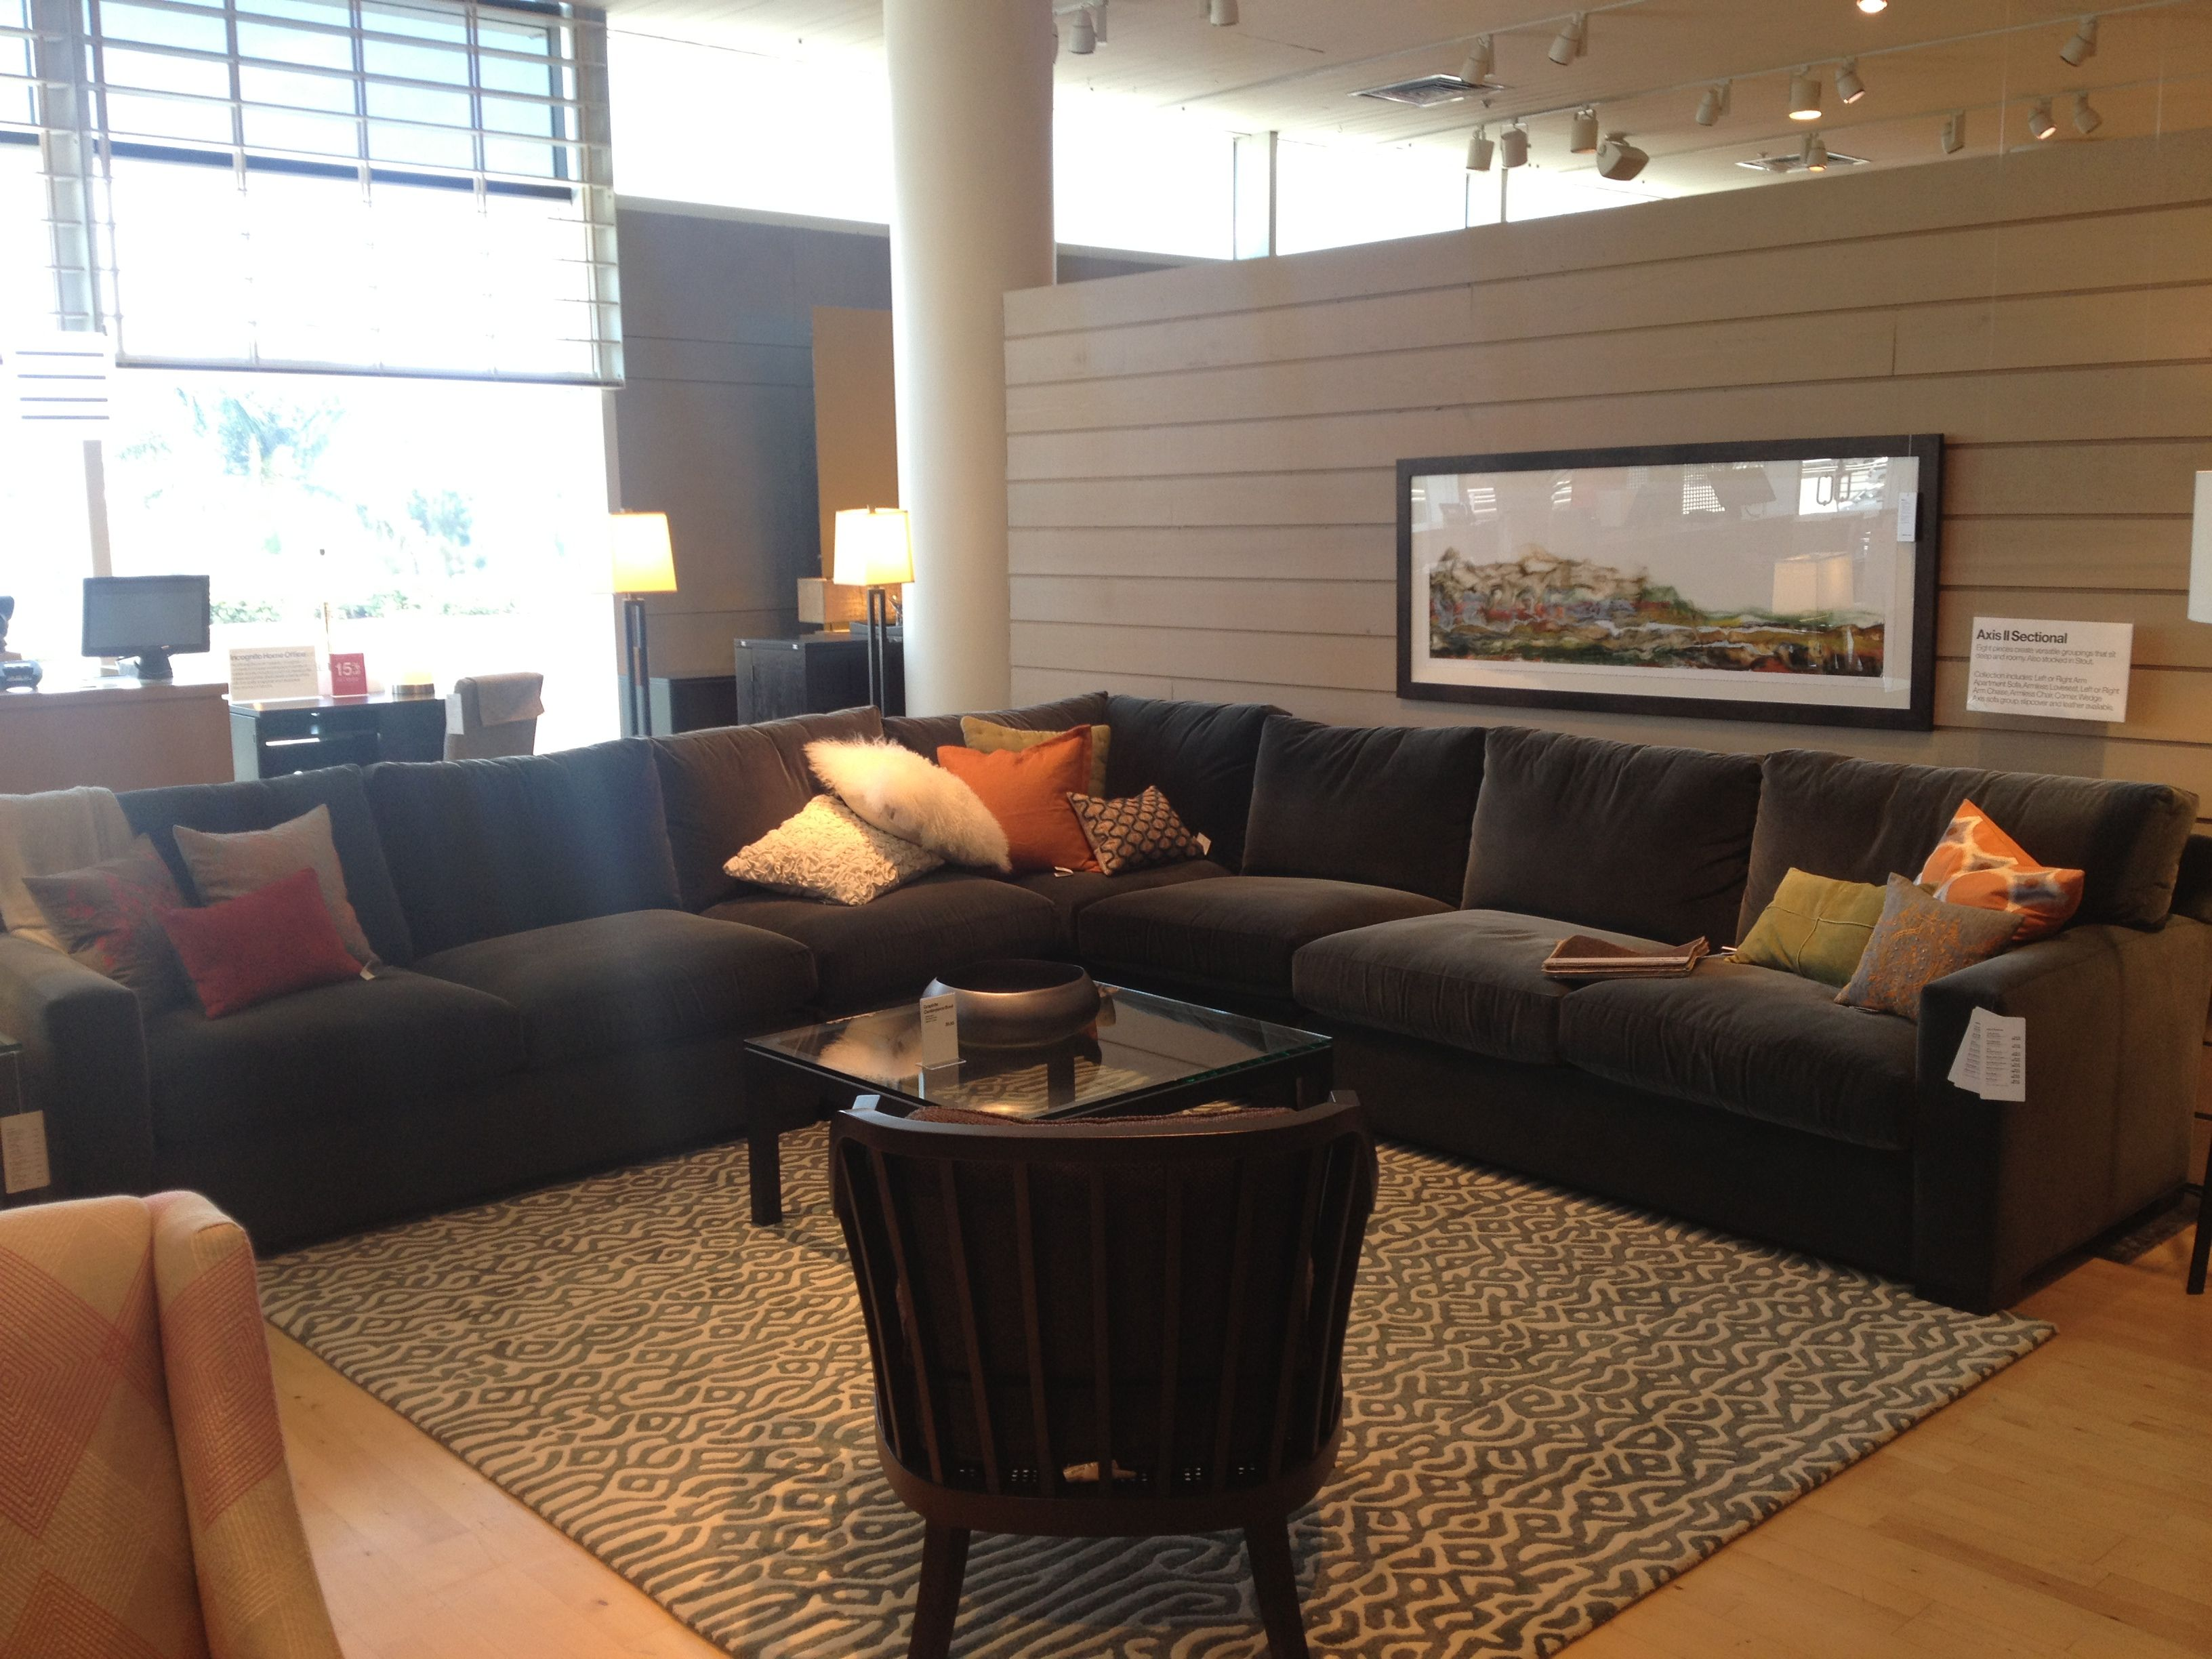 Crate barrel sectional axis ii color charcoal 2700 3000